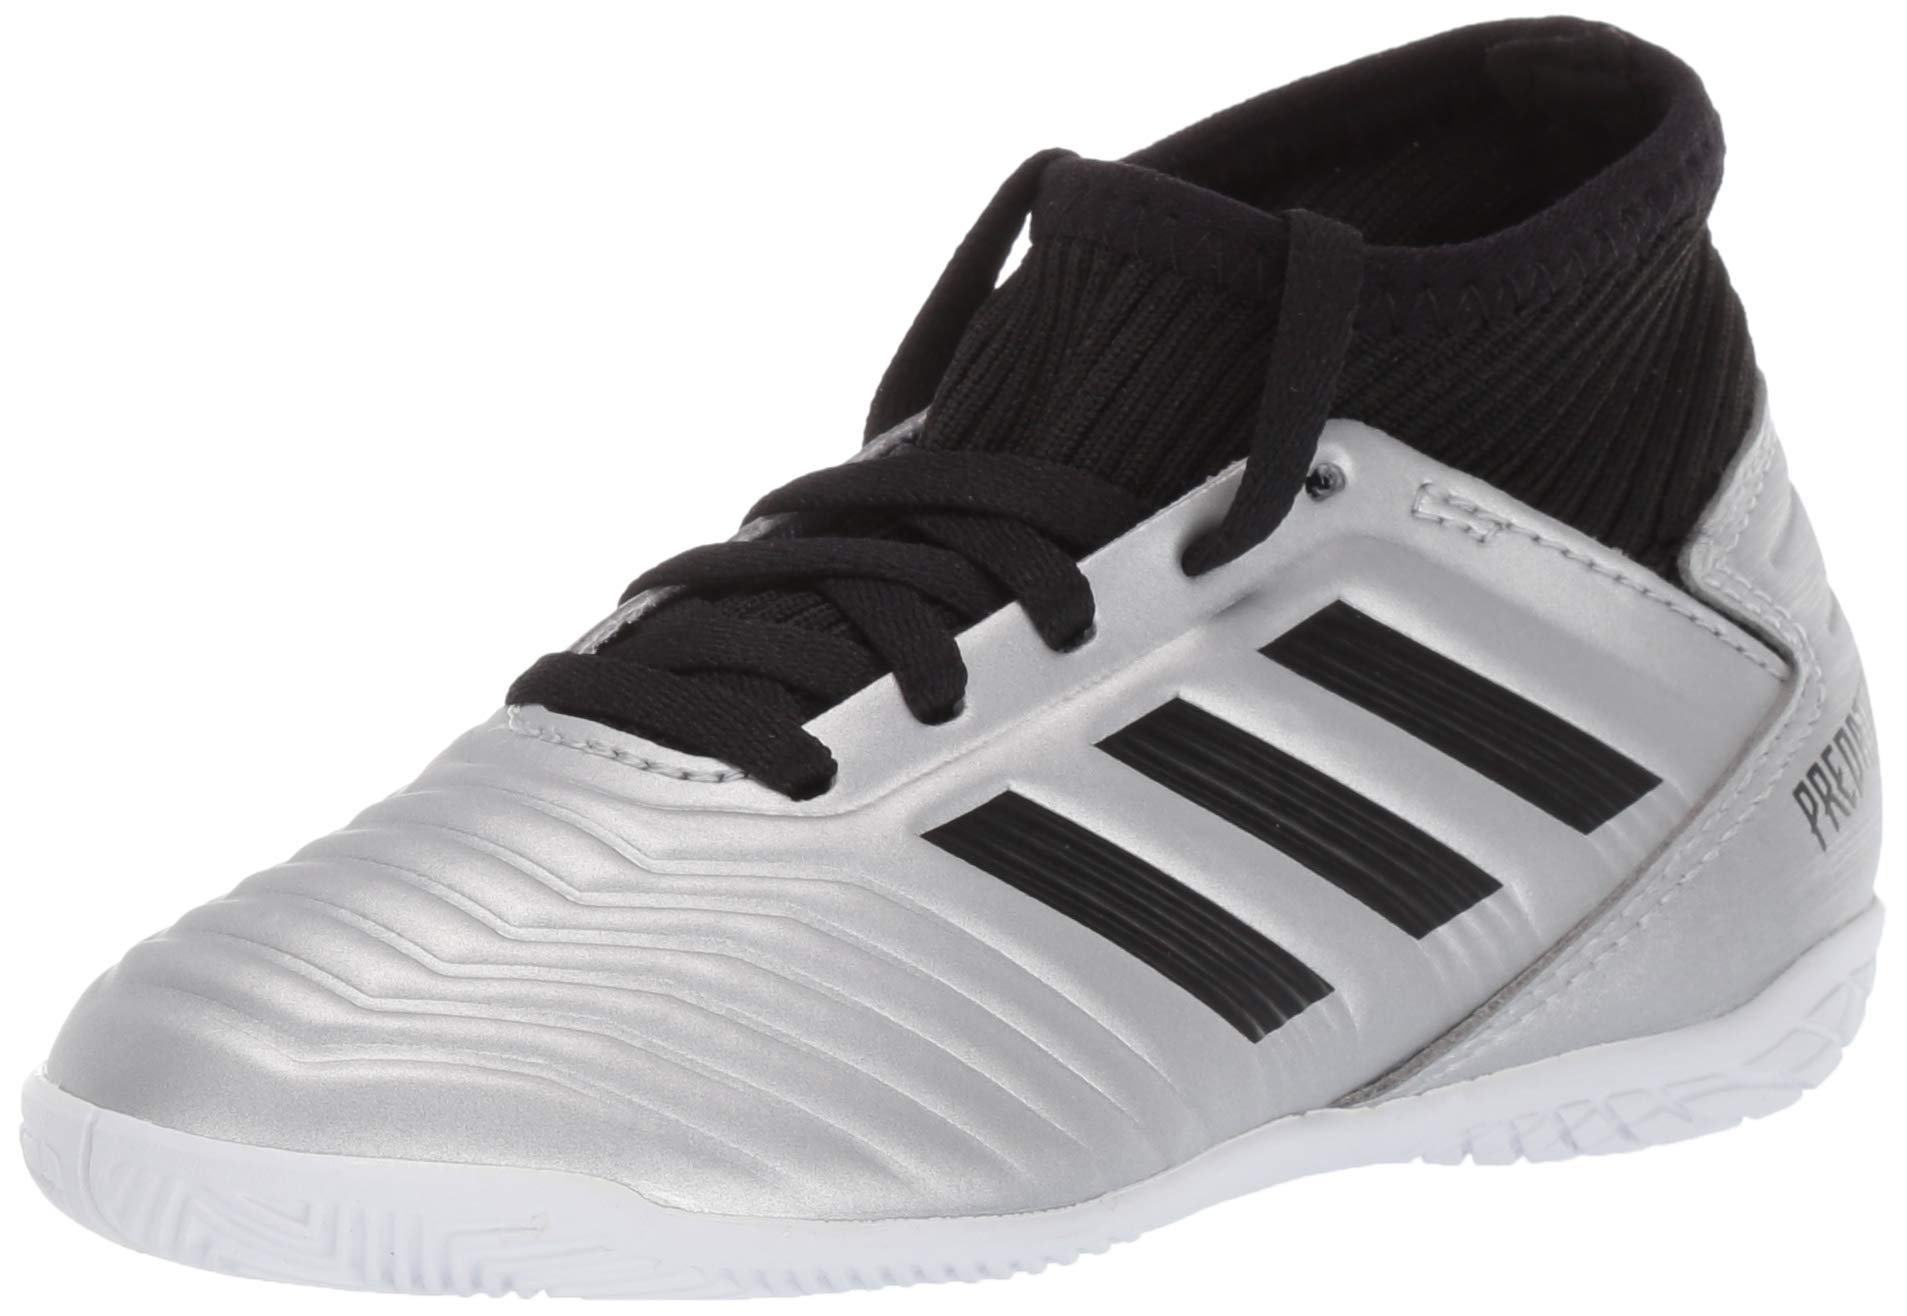 adidas Unisex Predator 19.3 Indoor Soccer Shoe, Silver Metallic/Black/hi-res red, 10.5K M US Little Kid